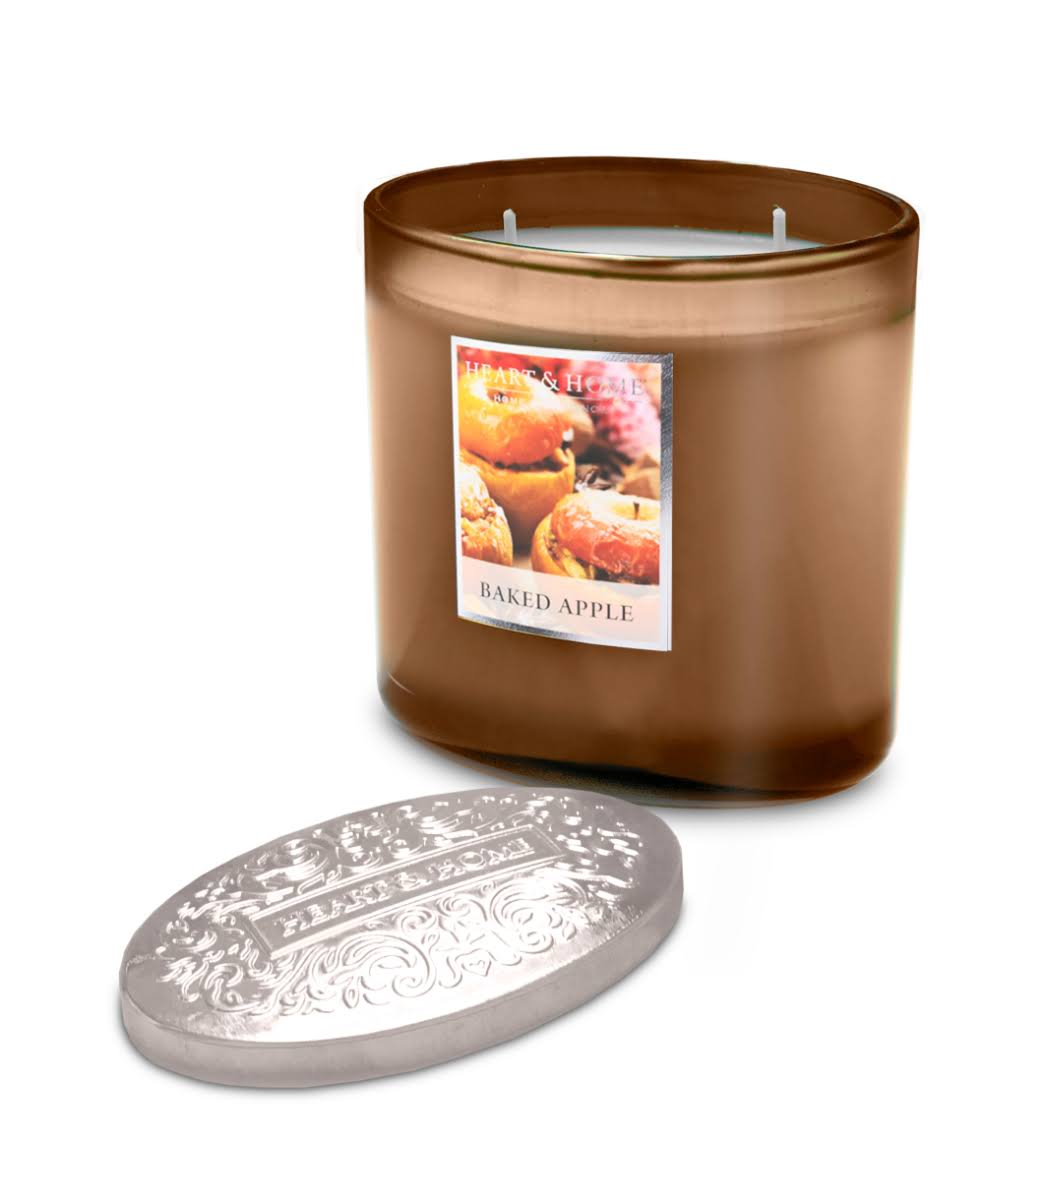 Heart and Home Scented Ellipse Candle - Baked Apple, 2 Wick